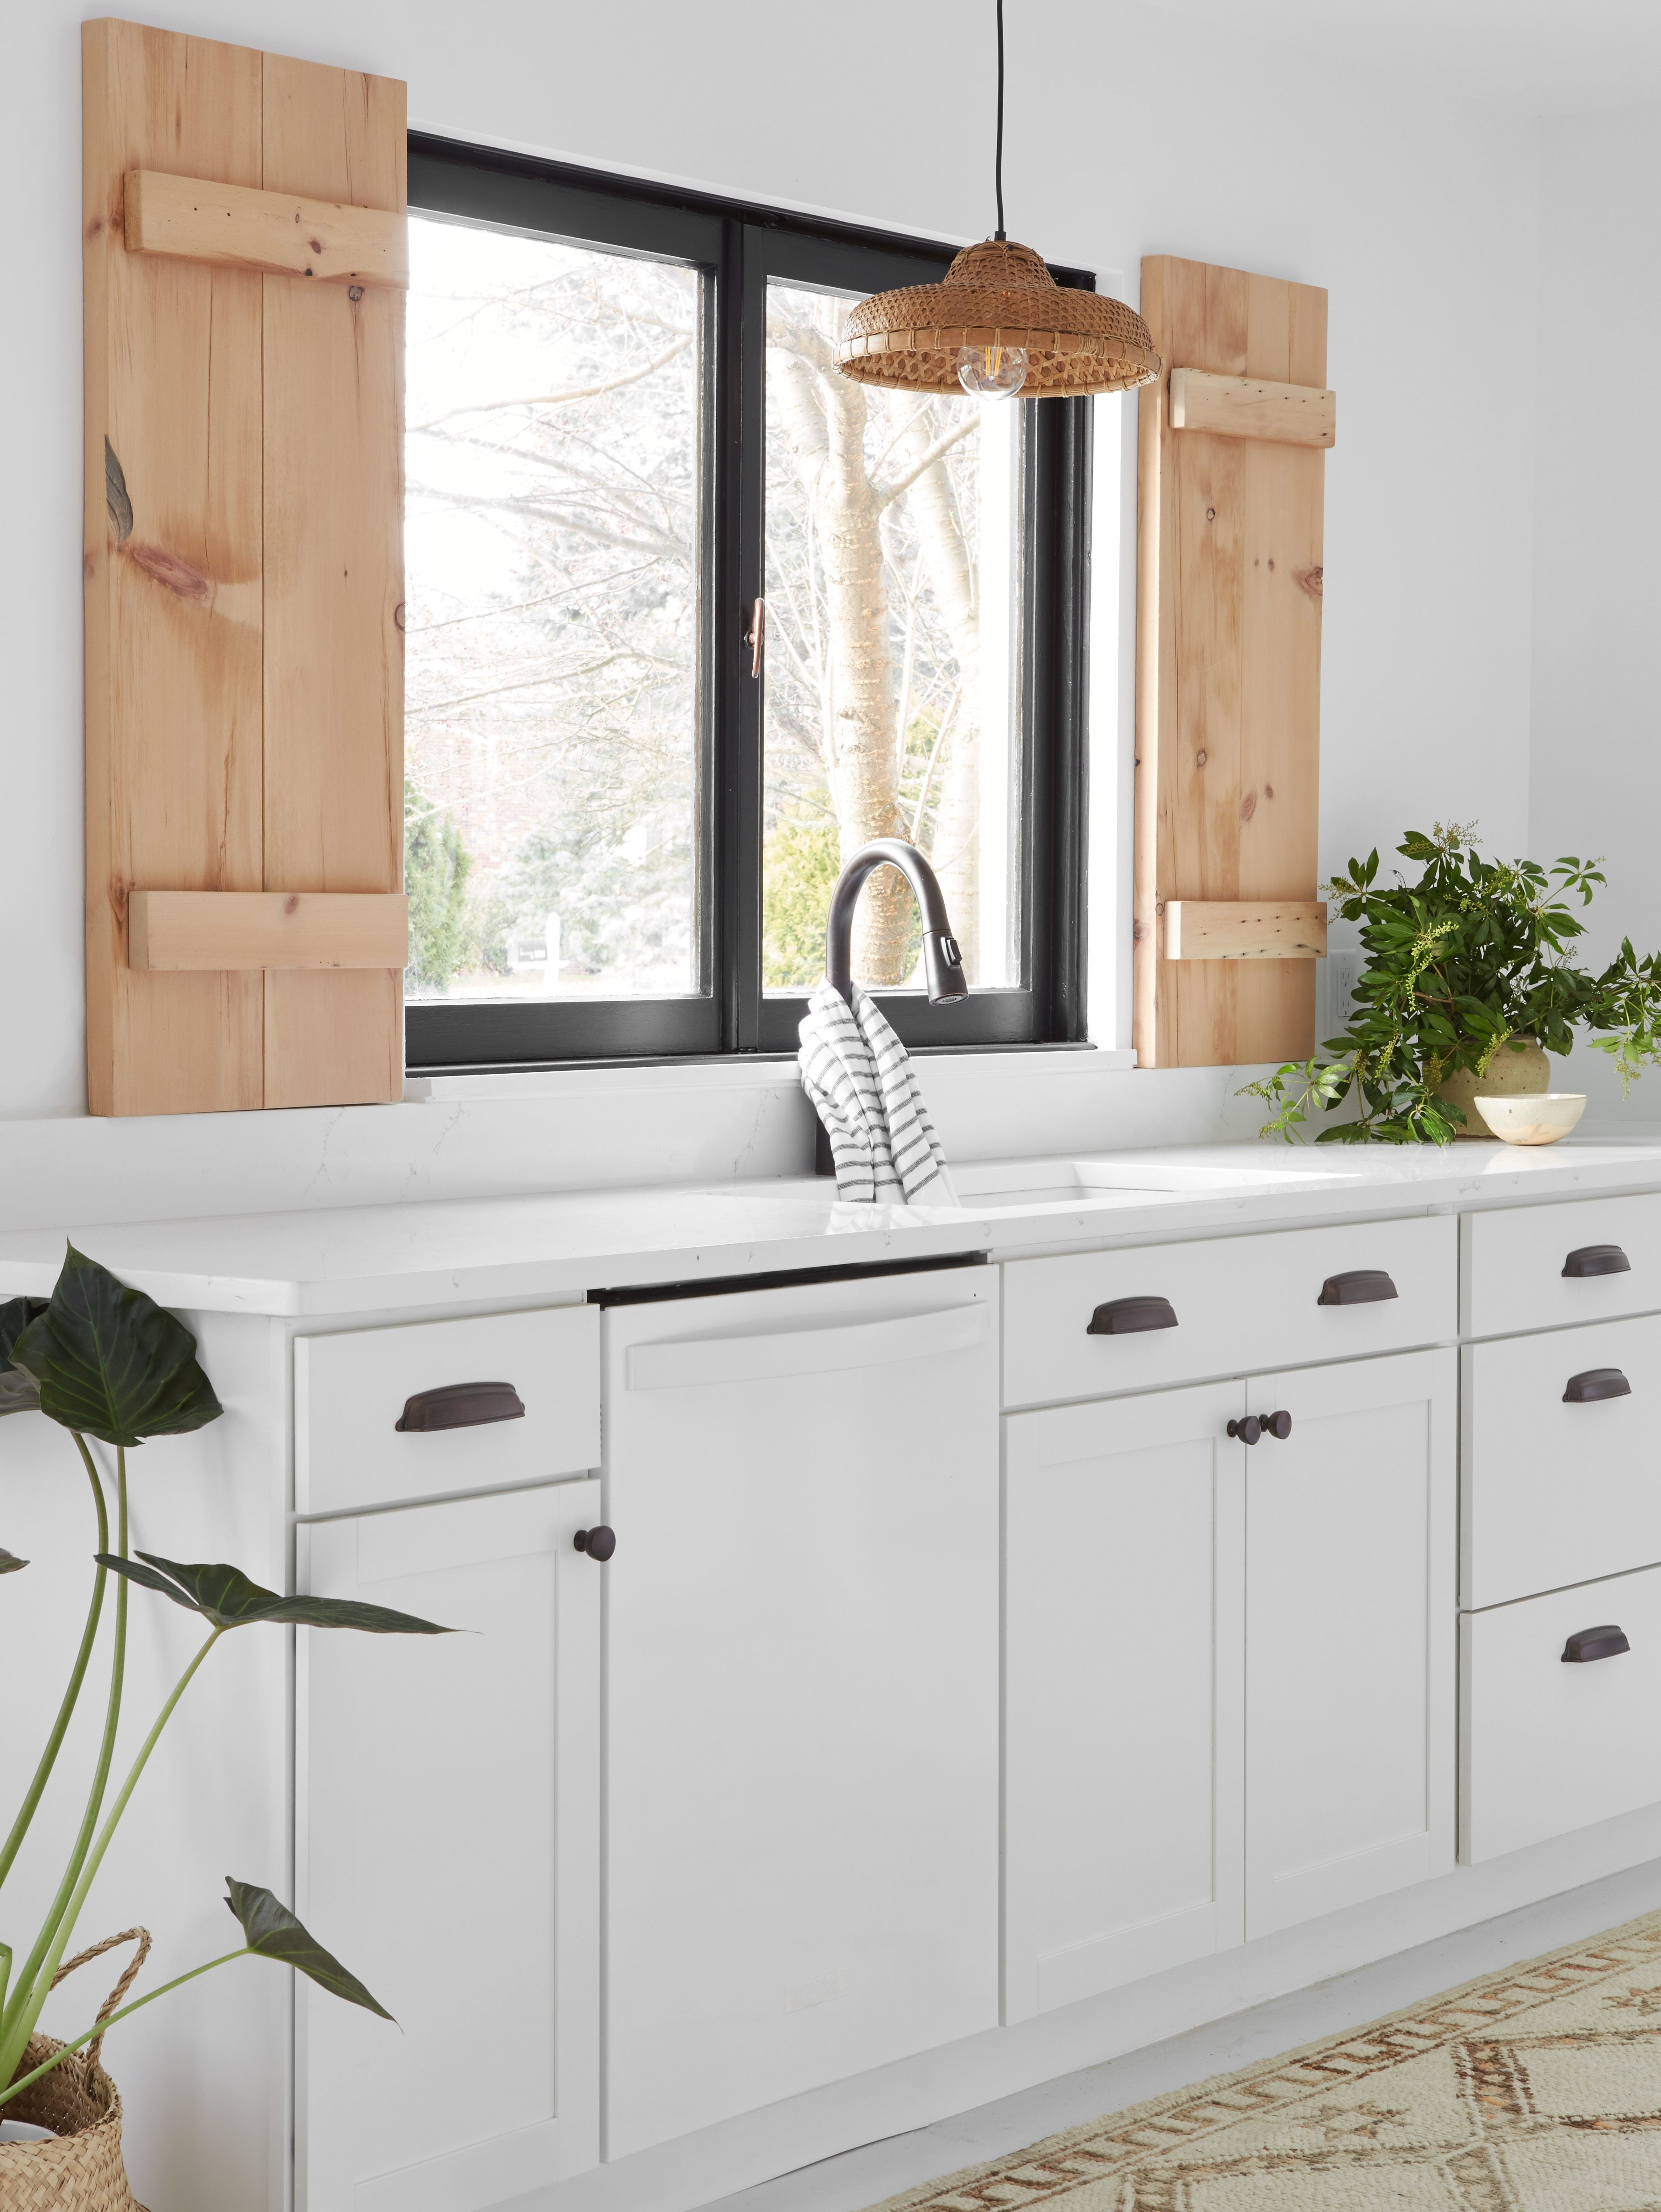 white kitchen sink area with raw wood shutters by the window